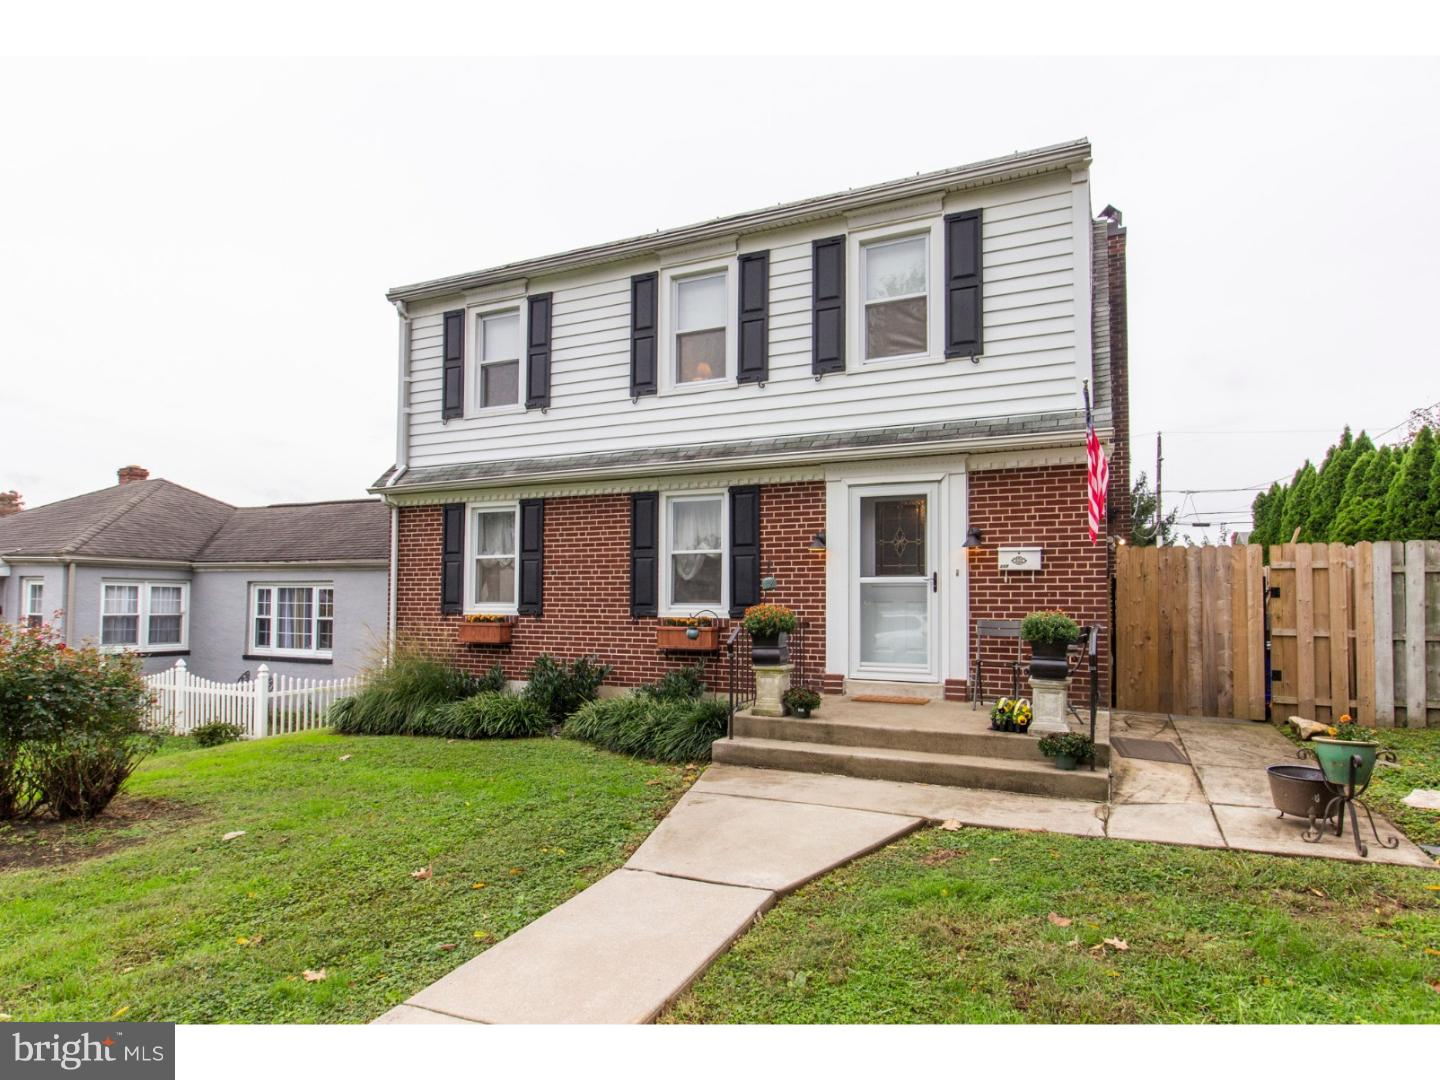 317 E 12th Ave Conshohocken Pa 19428 Conshohocken